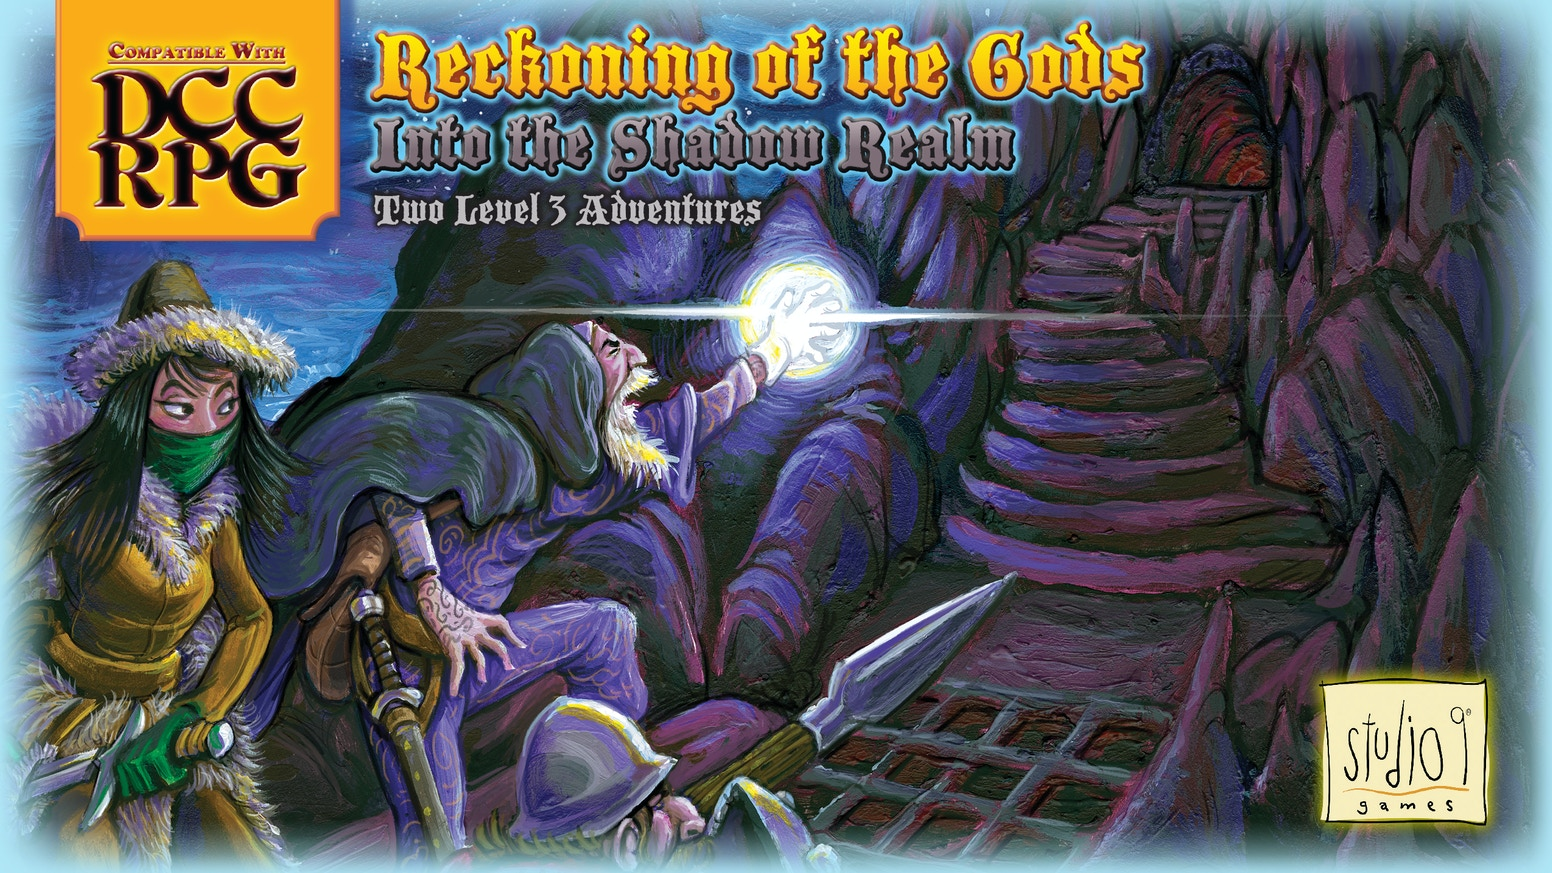 Trespass into a parallel realm to heist the hoard of an ancient evil. A booklet of two level 3 DCC RPG adventures (adapts to any RPG).